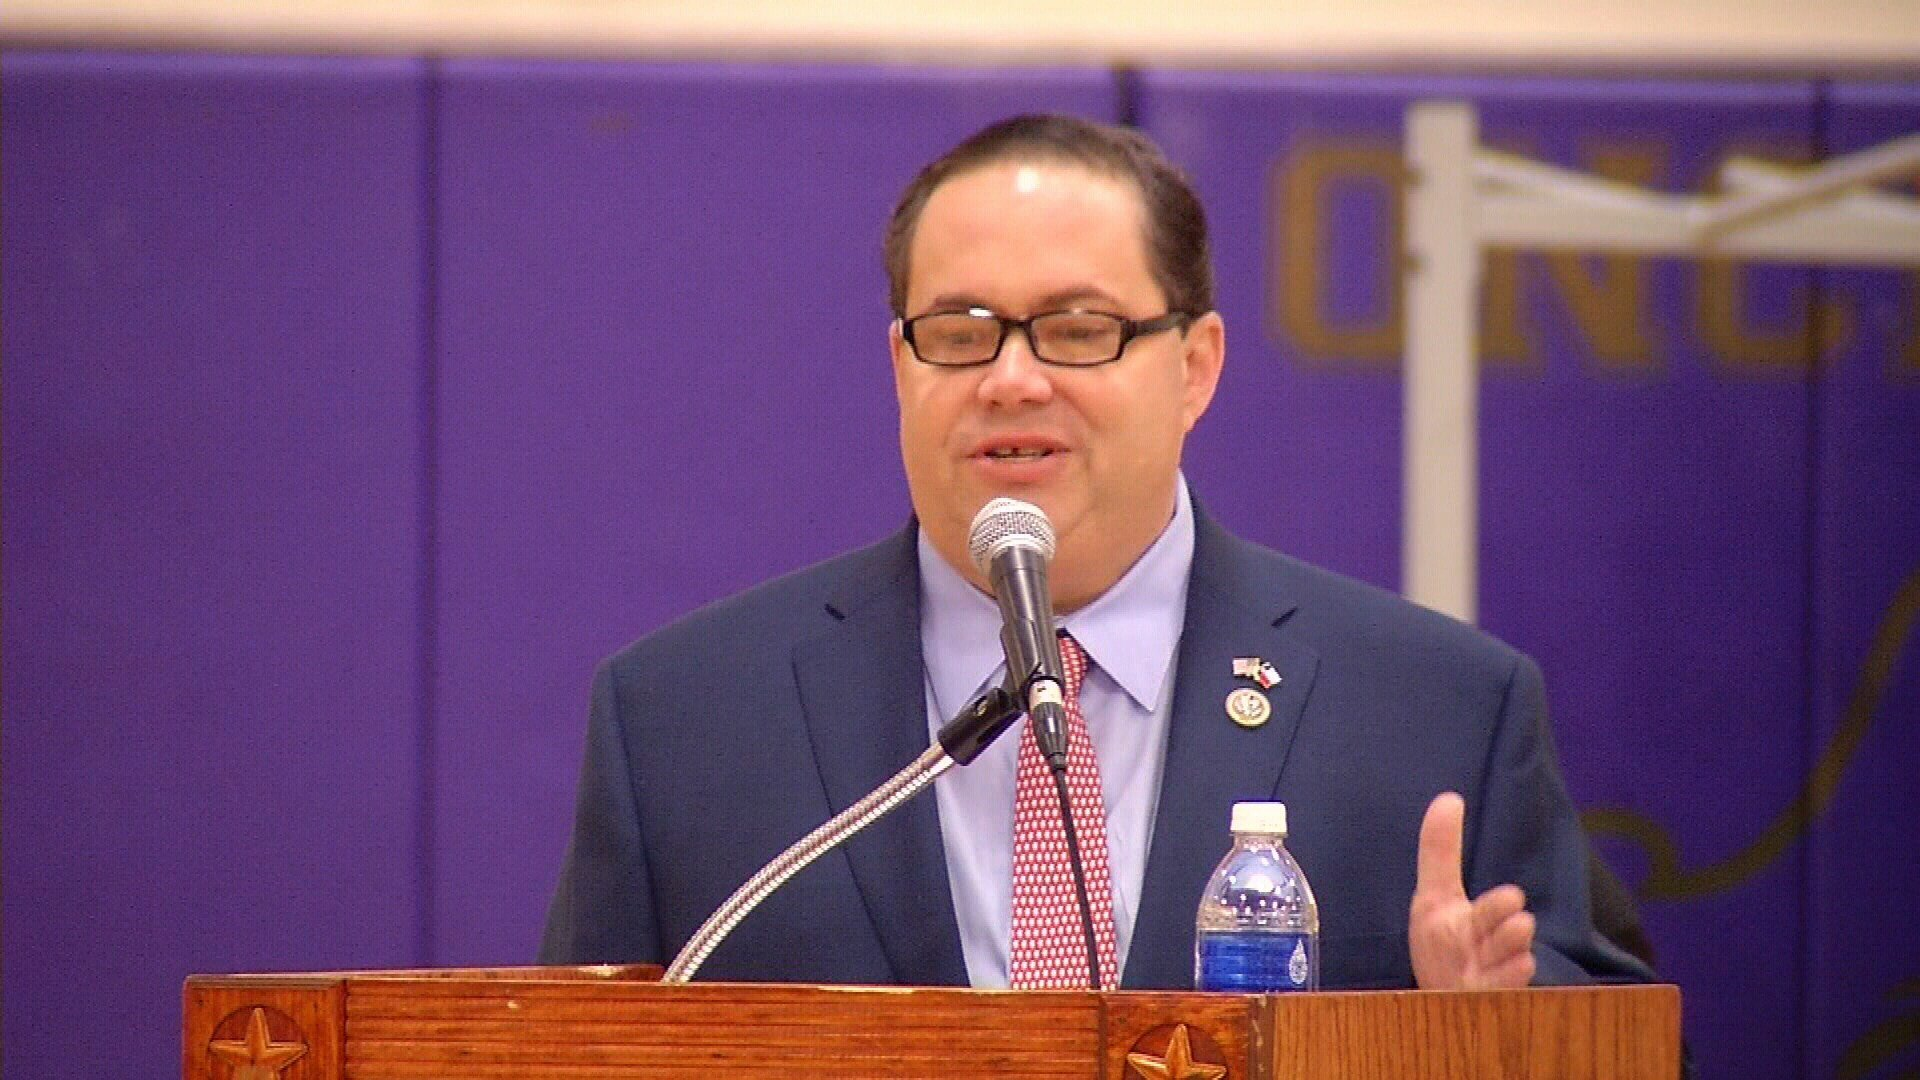 Lawsuit claims Calhoun Port officials hired Blake Farenthold illegally